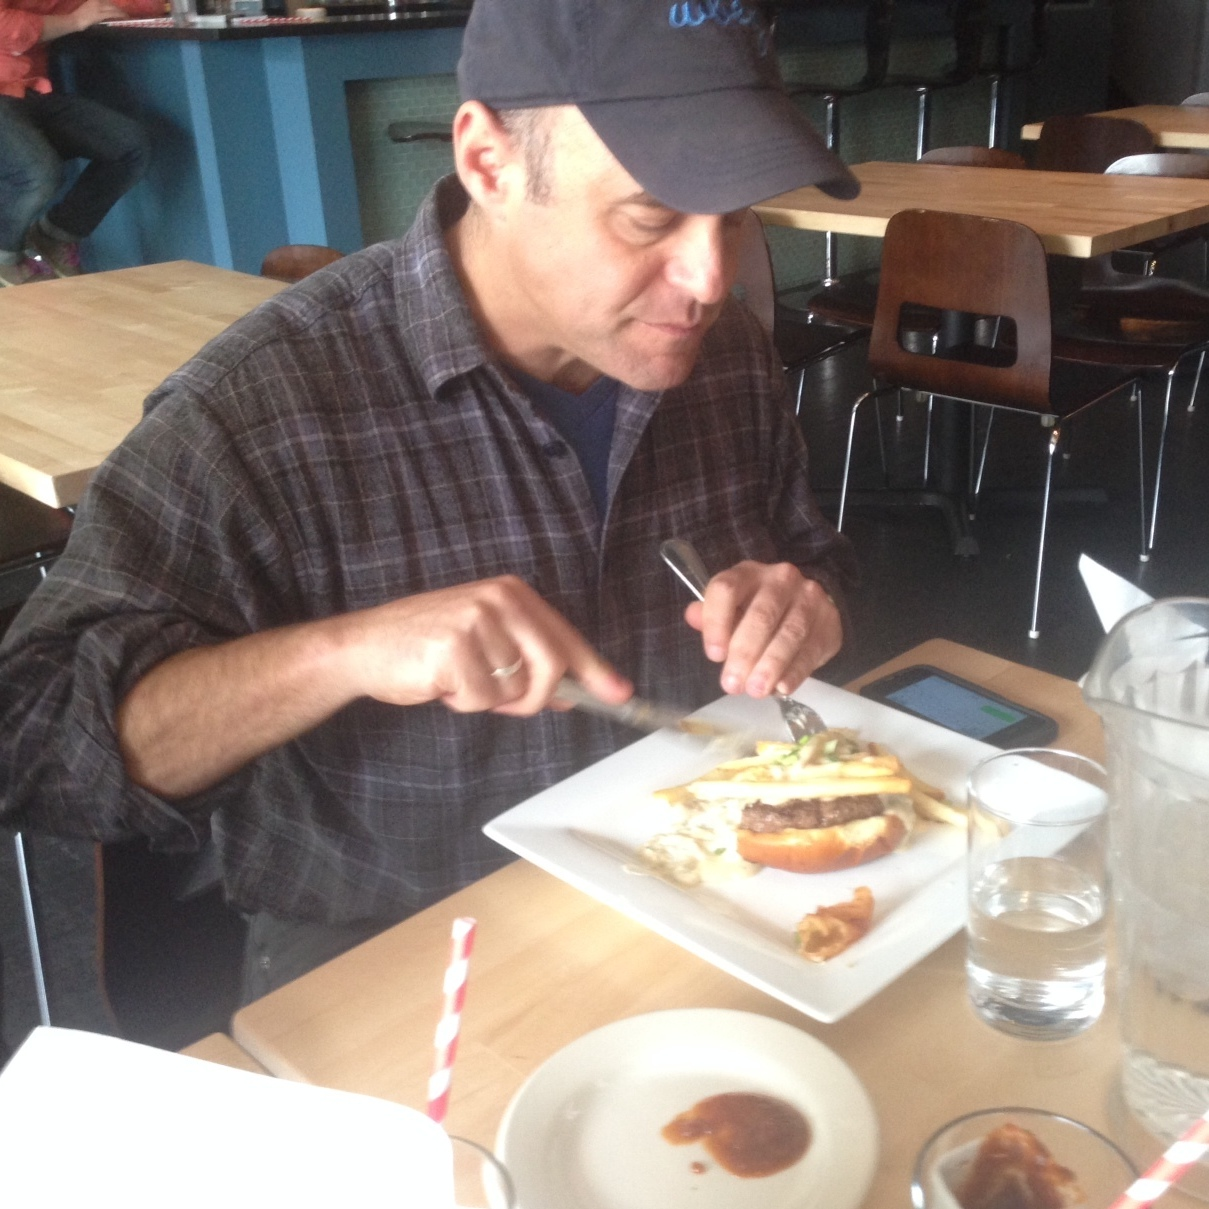 """All of us here were flummoxed by these """"knife"""" and """"fork"""" contraptions required for this sandwich."""